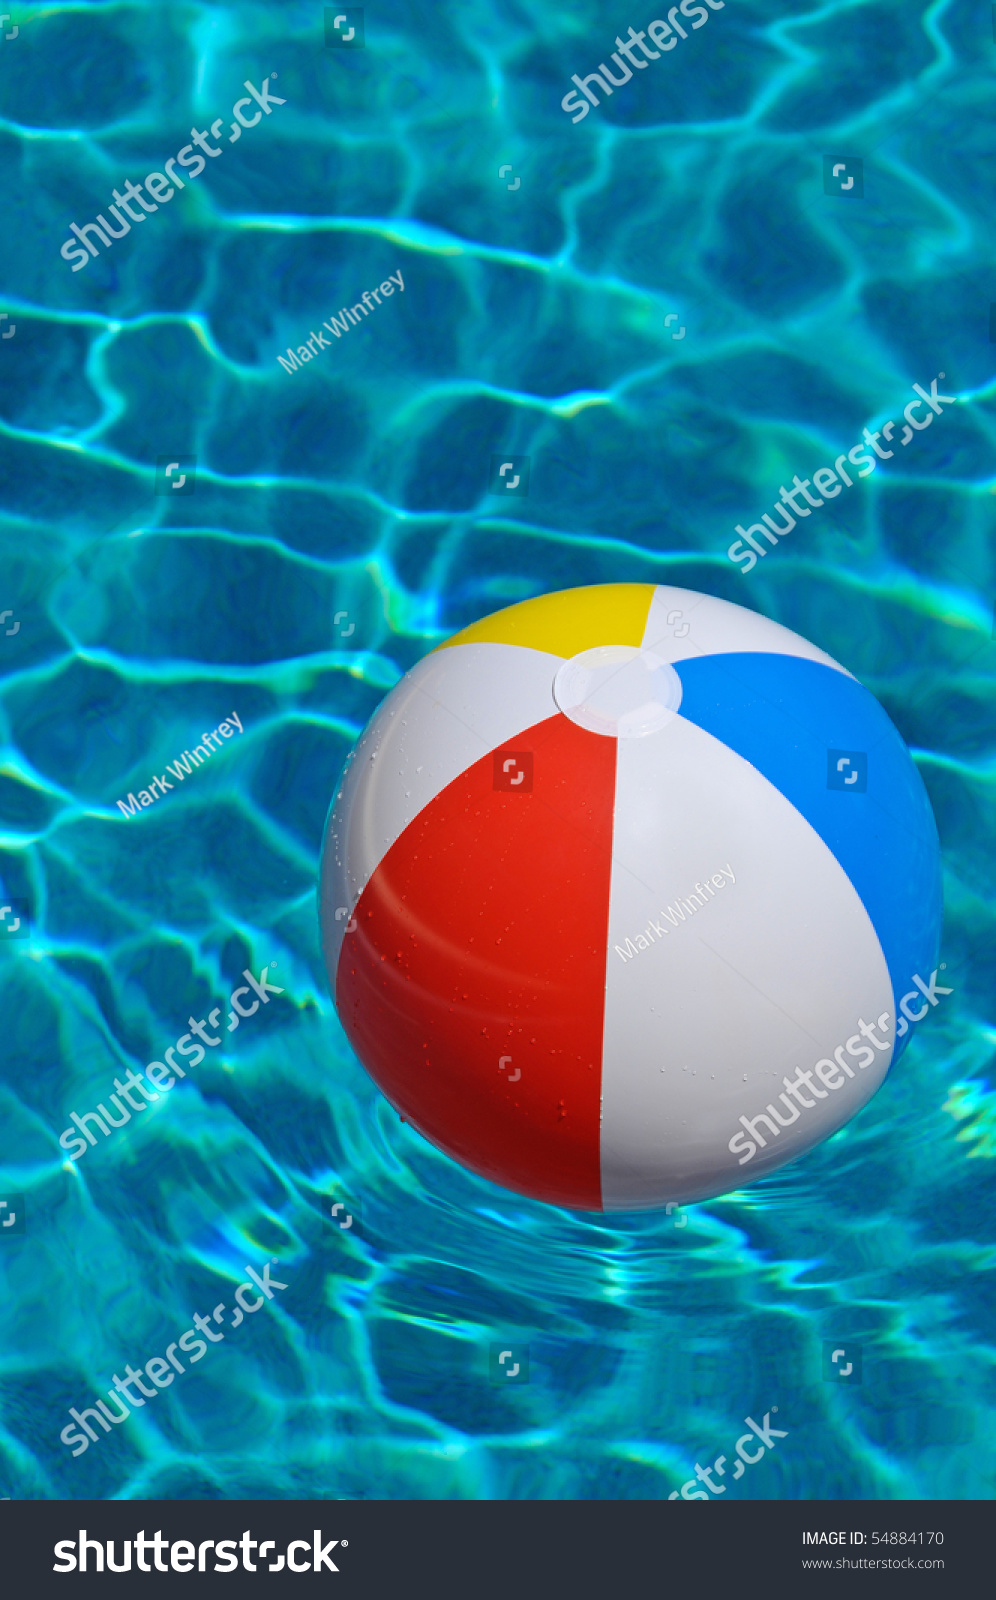 stock-photo-beach-ball-floating-in-the-s